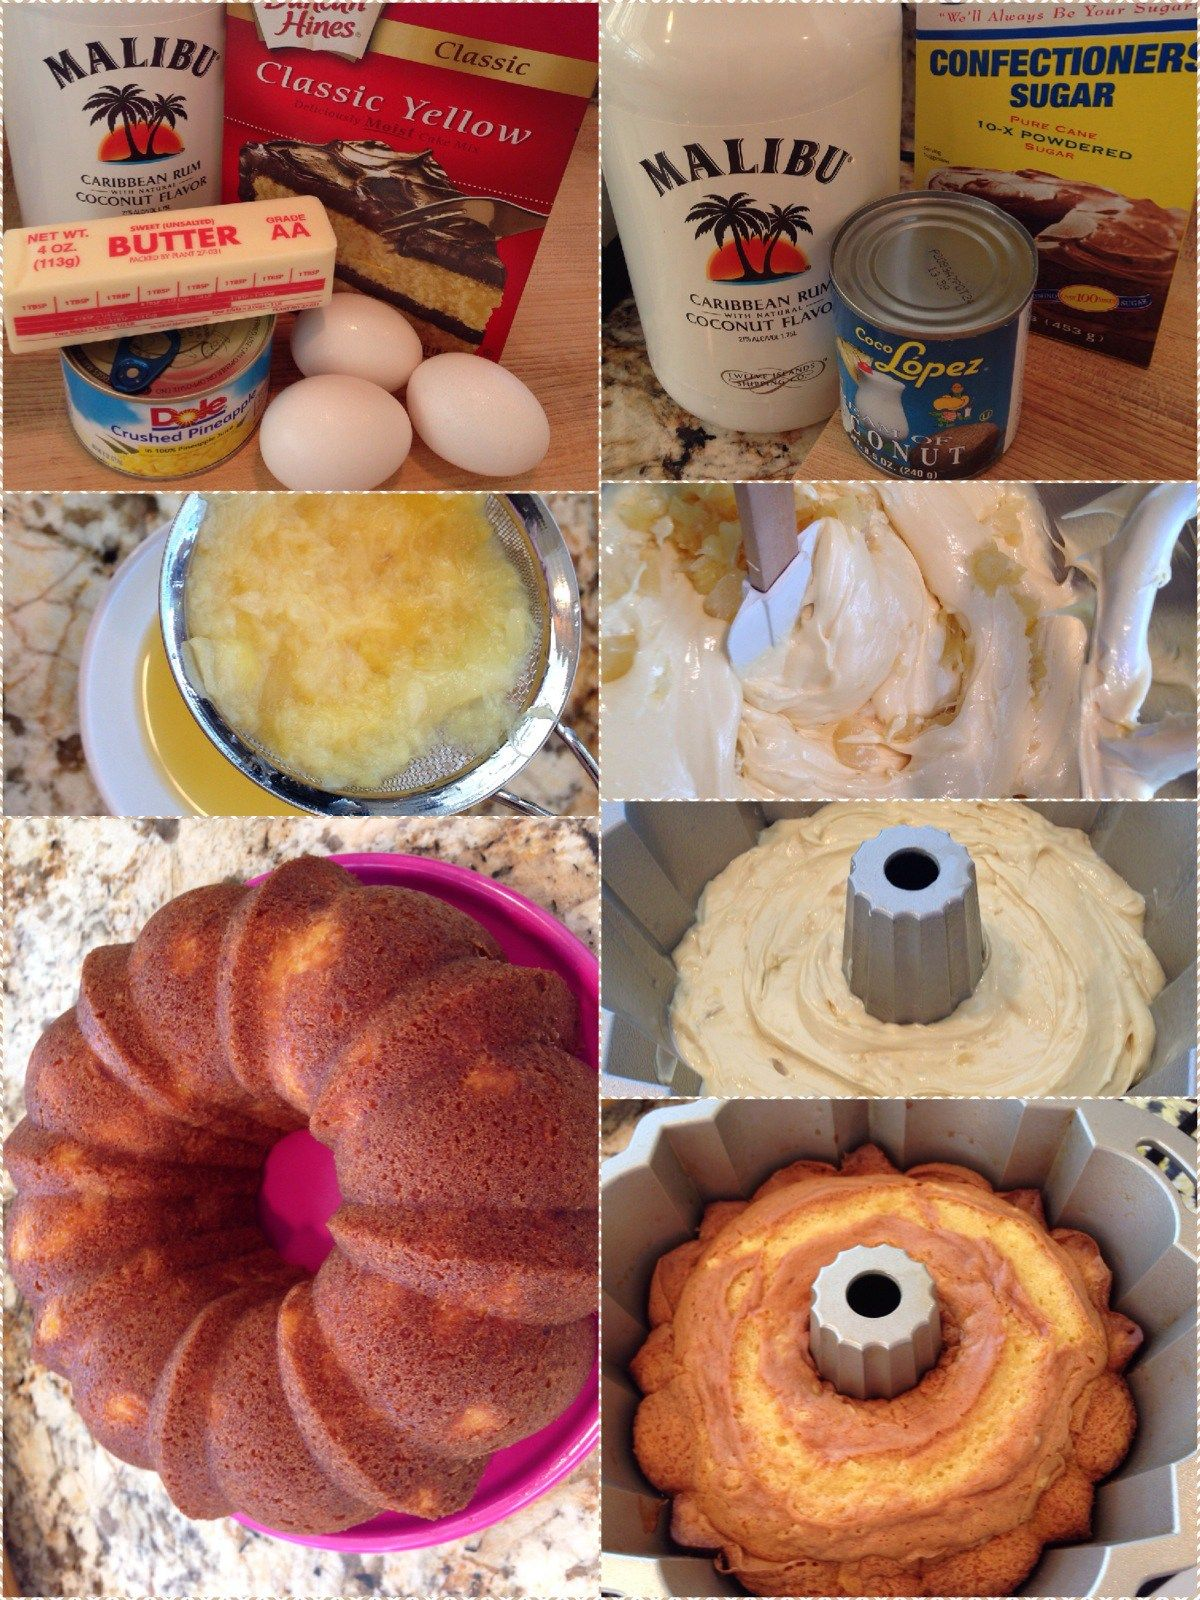 Ingredients 1 Box Duncan Hines Classic Golden Butter Cake Mix